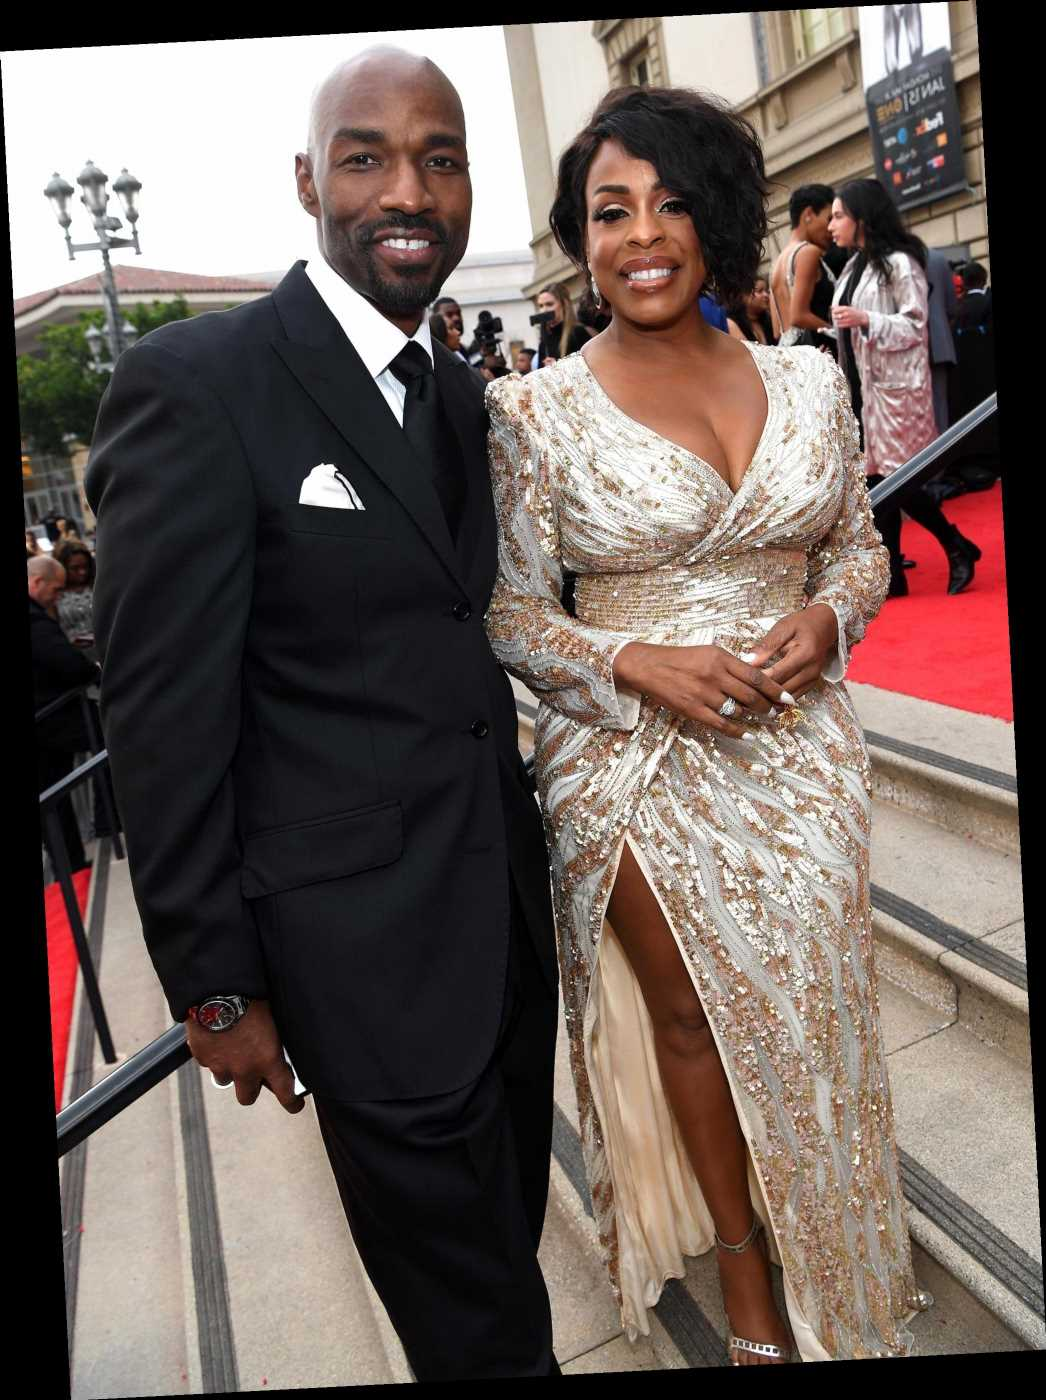 Niecy Nash Files for Divorce from Husband Jay Tucker More Than 1 Month After Announcing Split